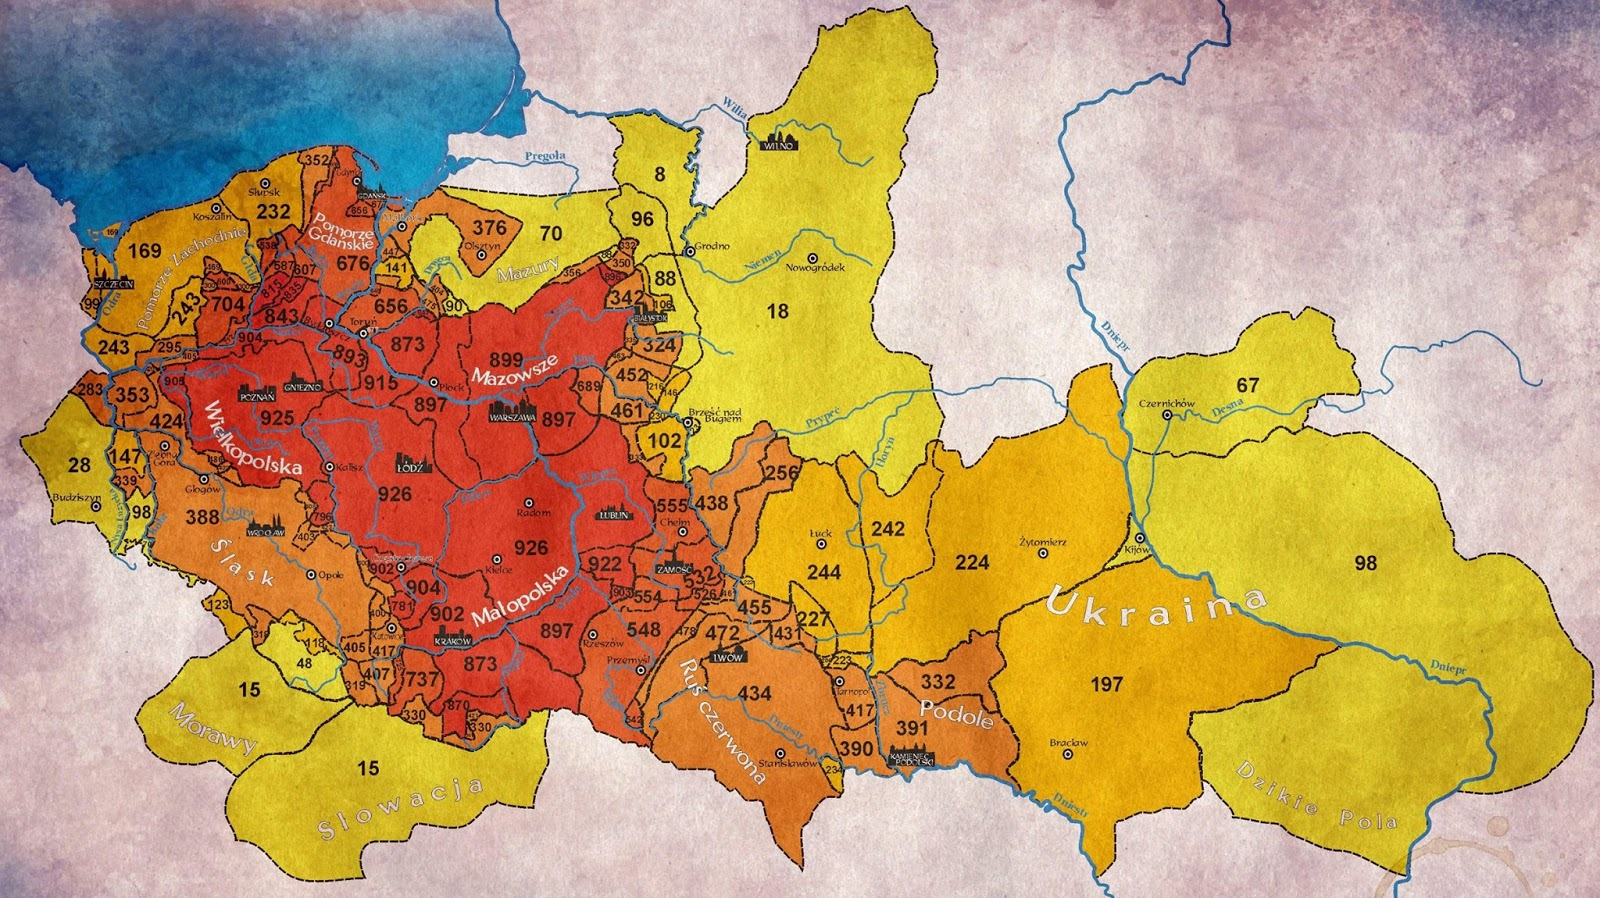 Map showing how many years the territory was included in Poland